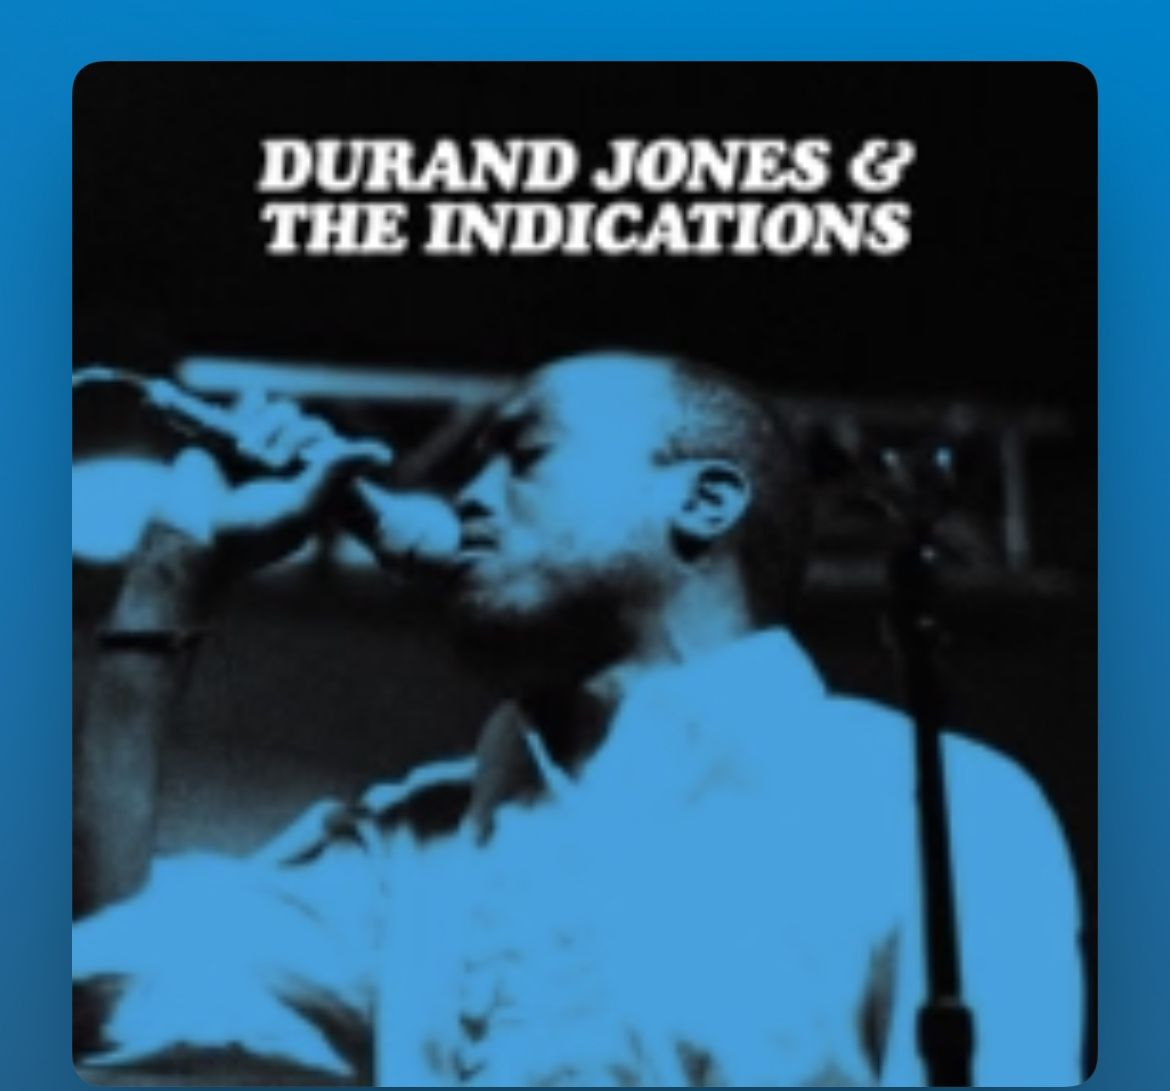 2 Tix To Durand Jones And The Indications